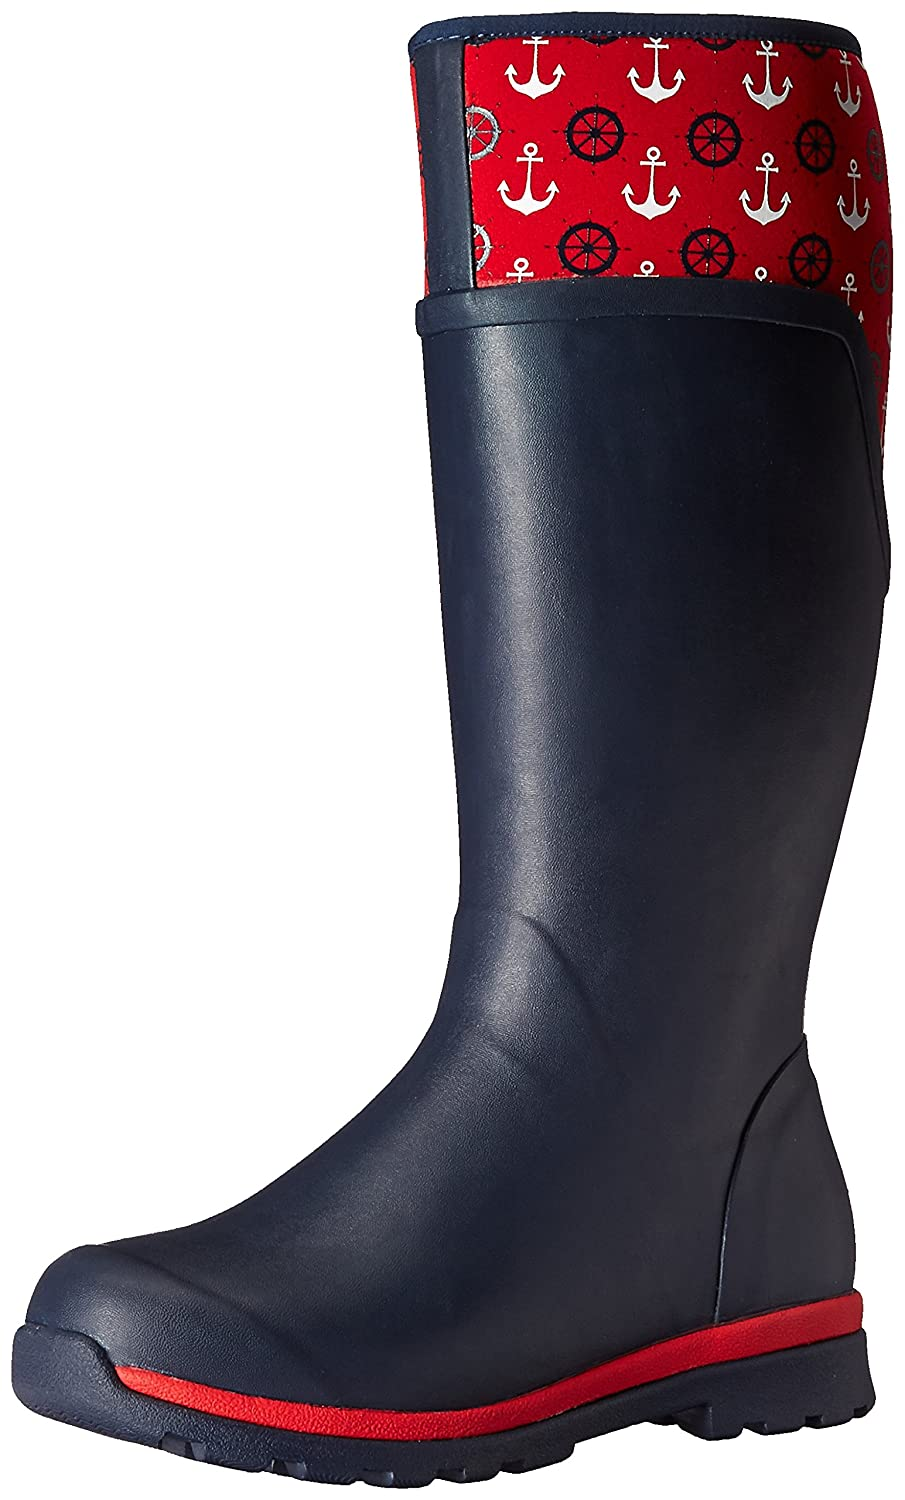 Muck Boot Women's Cambridge Tall Snow B01MT9BTZ4 7 B(M) US|Navy With Red Anchors